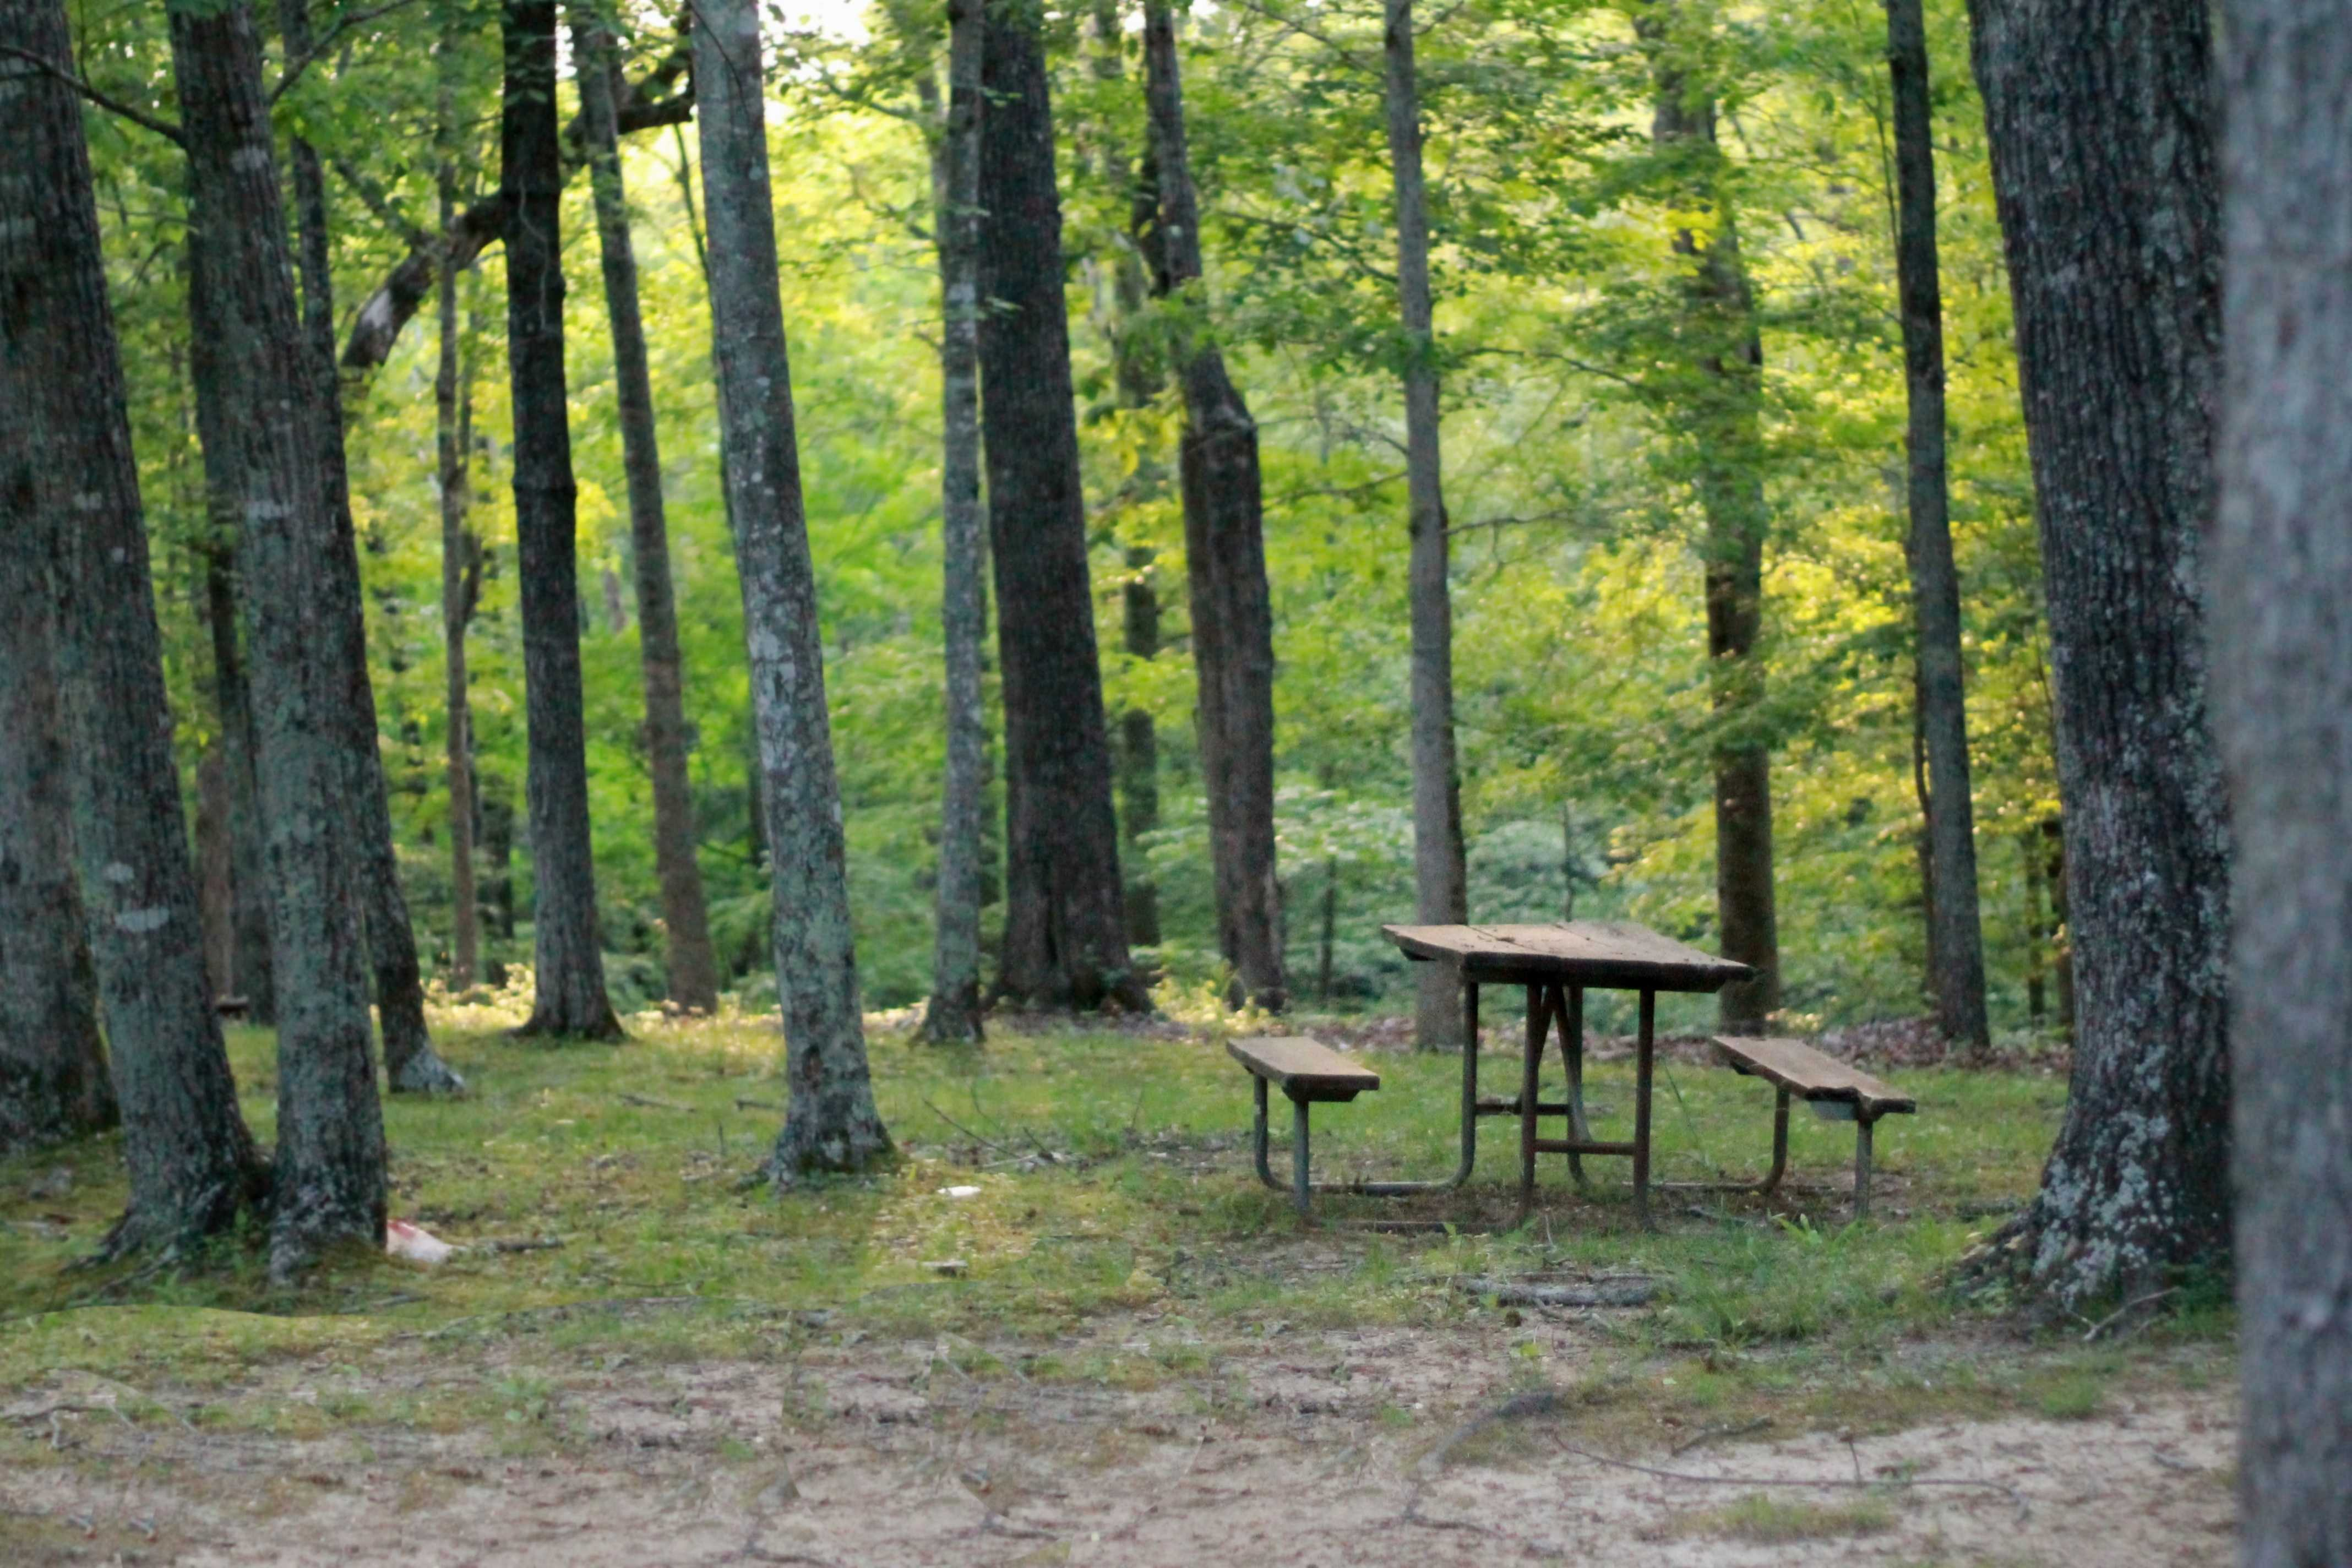 picnic-table-837221